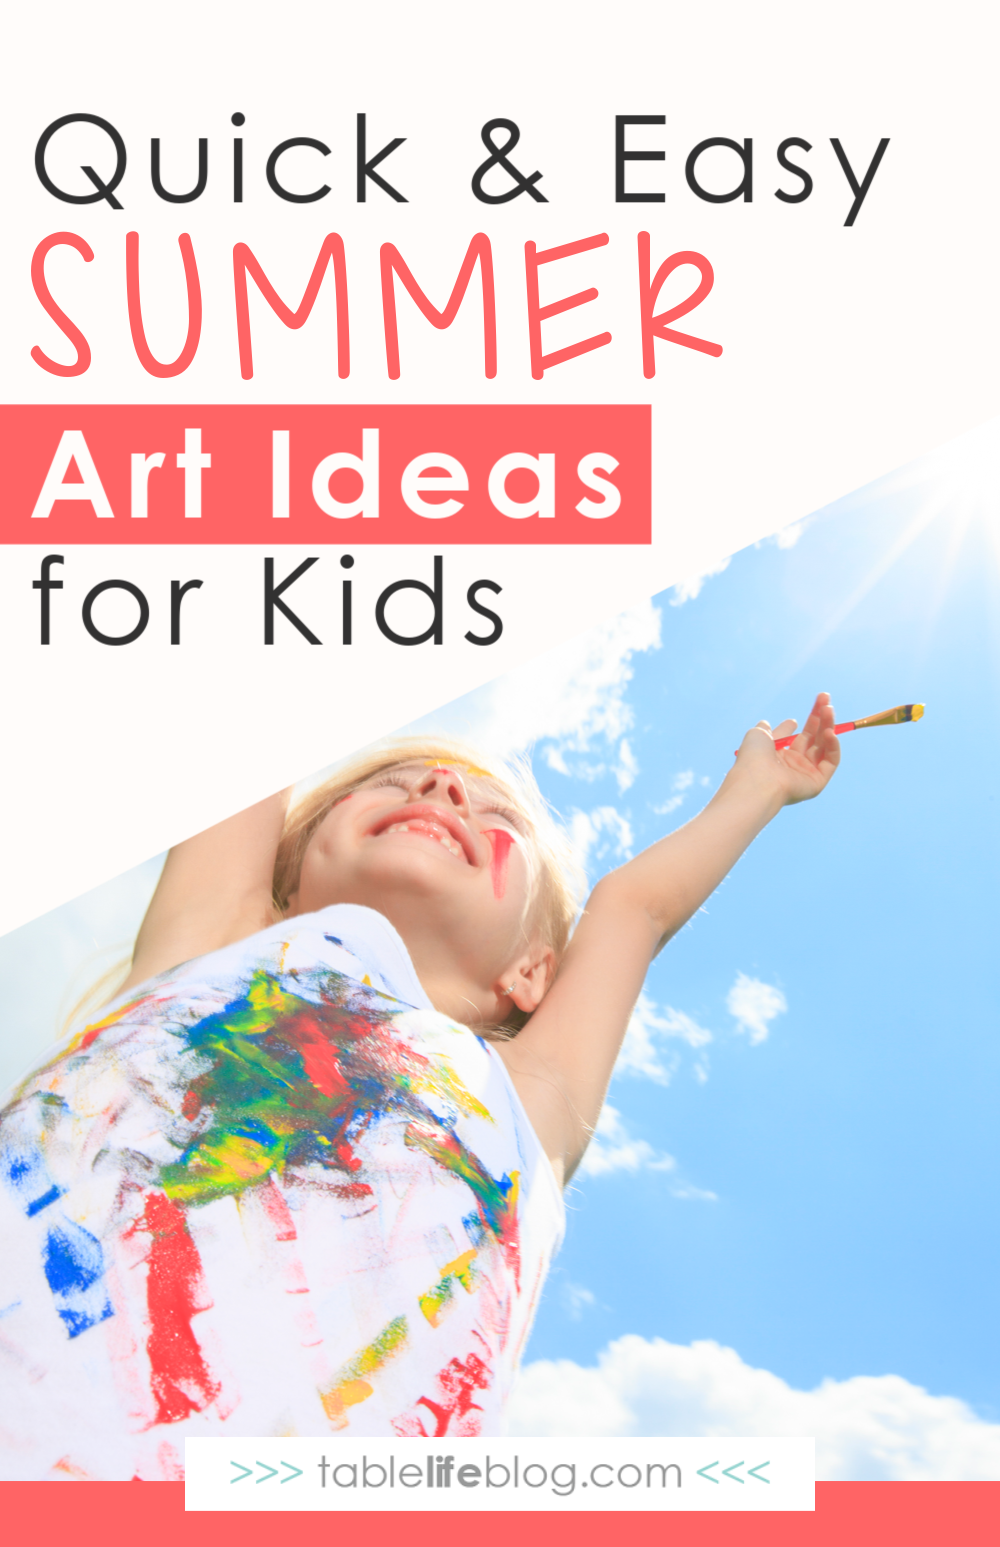 Your kiddos don't need to take a break from creativity this summer! Instead, inspire them with these fun, but easy summer art ideas.